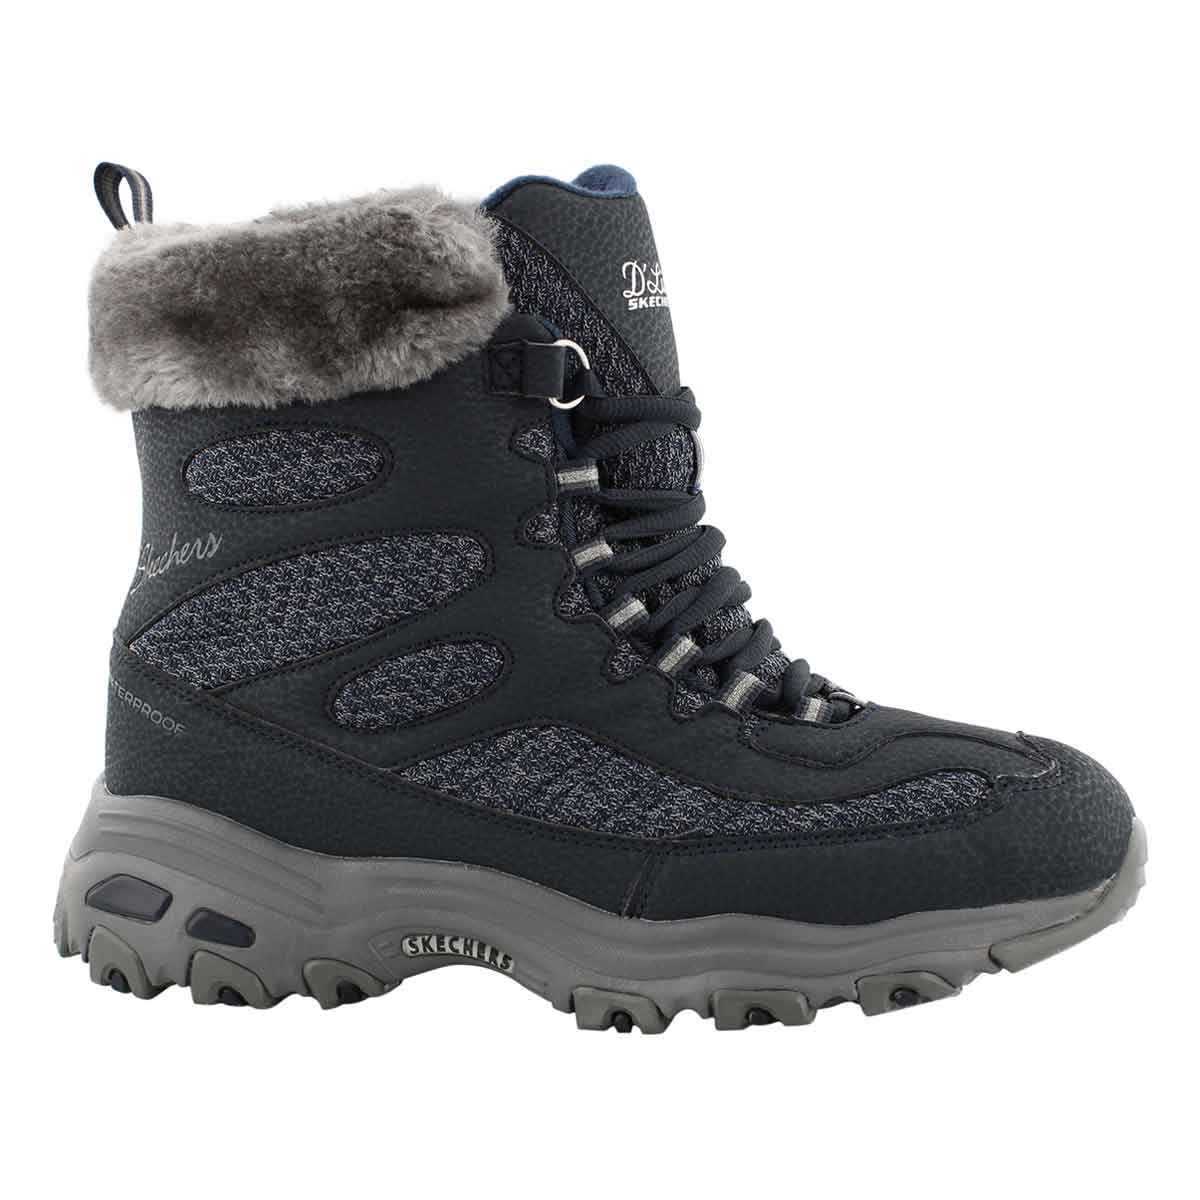 Lds D'Lites Bomb Cyclone nvy winter boot